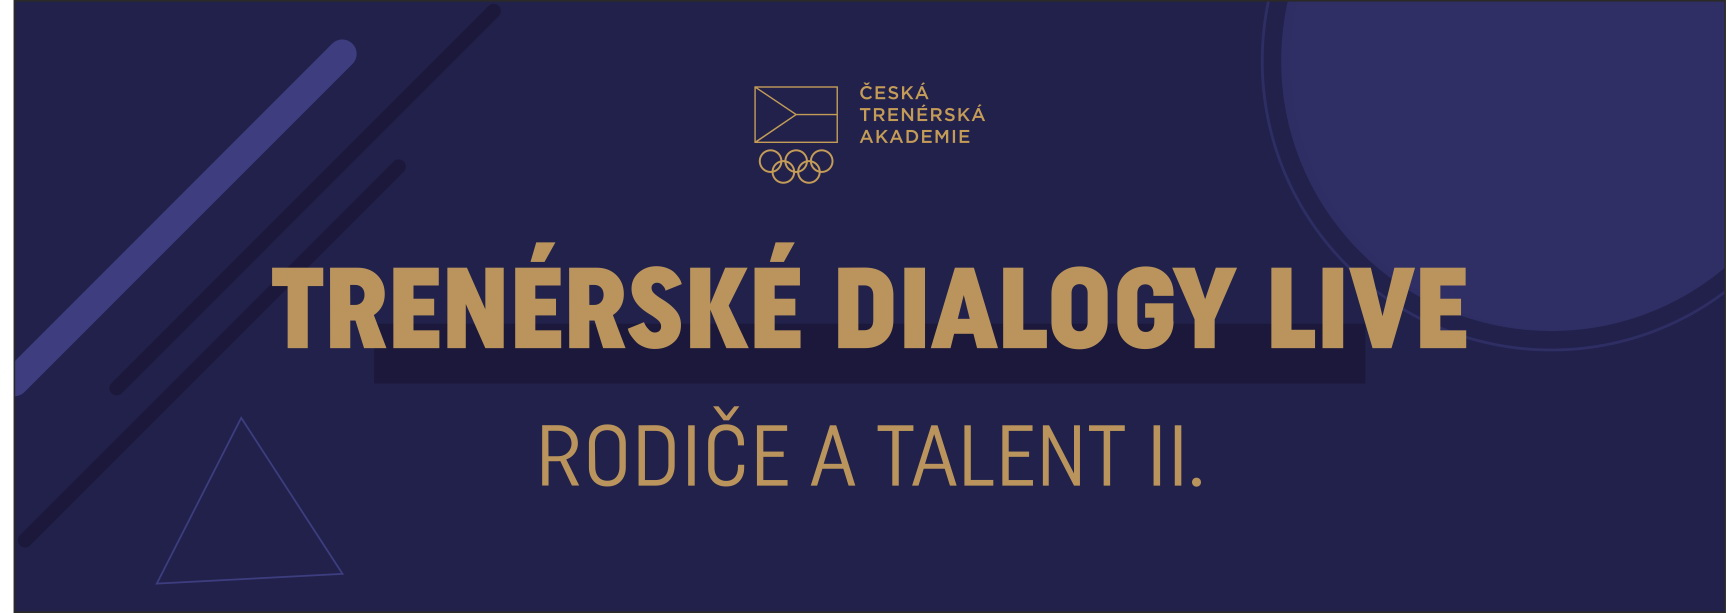 Dialogy on-line: Rodiče a talent II. (4. 6. 2020)